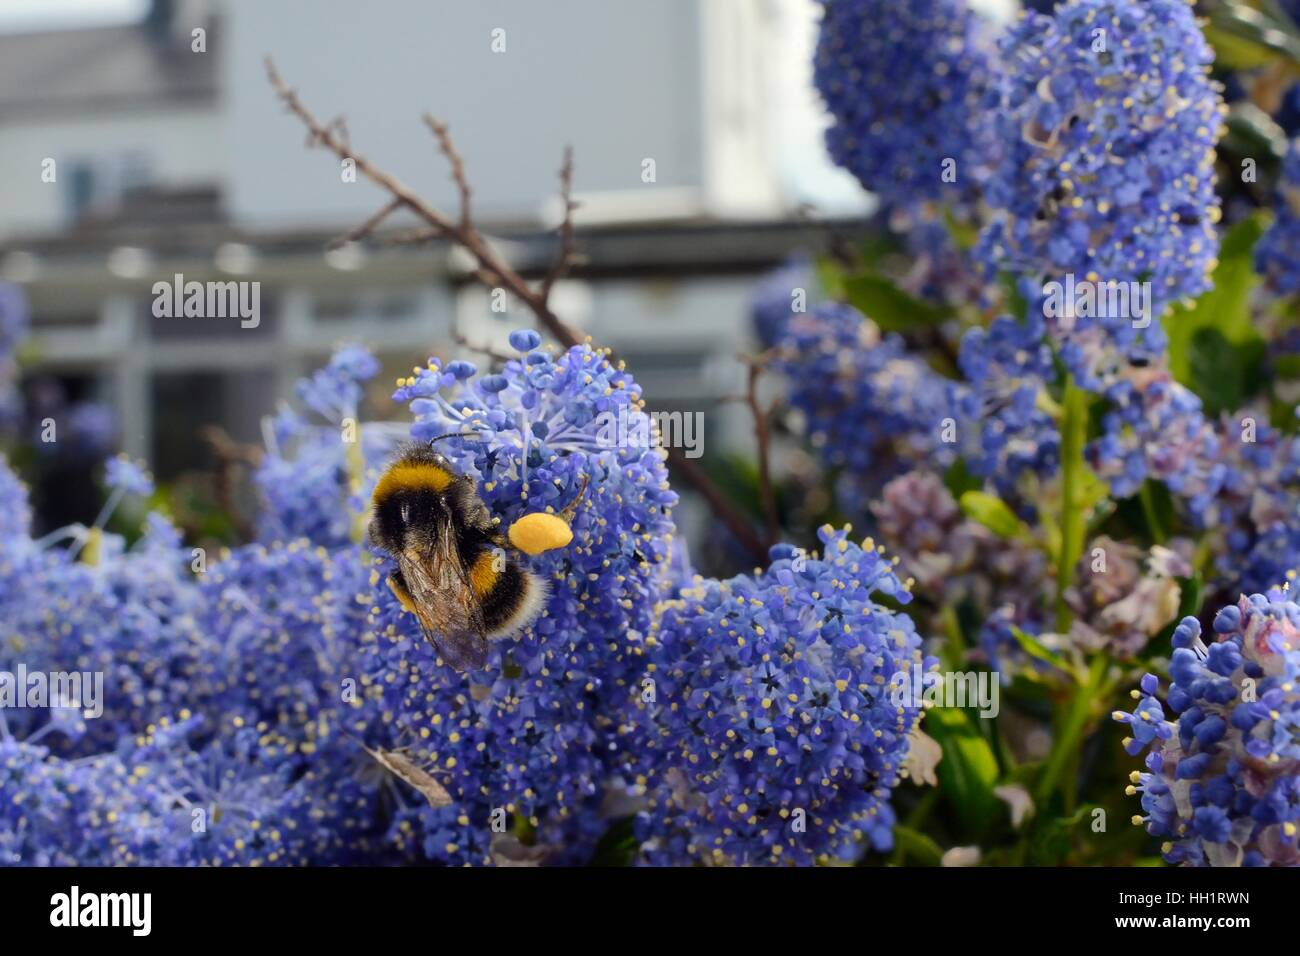 Buff-tailed bumblebee (Bombus terrestris) nectaring on Ceanothus flowers in a garden planted with flowers for pollinators, - Stock Image